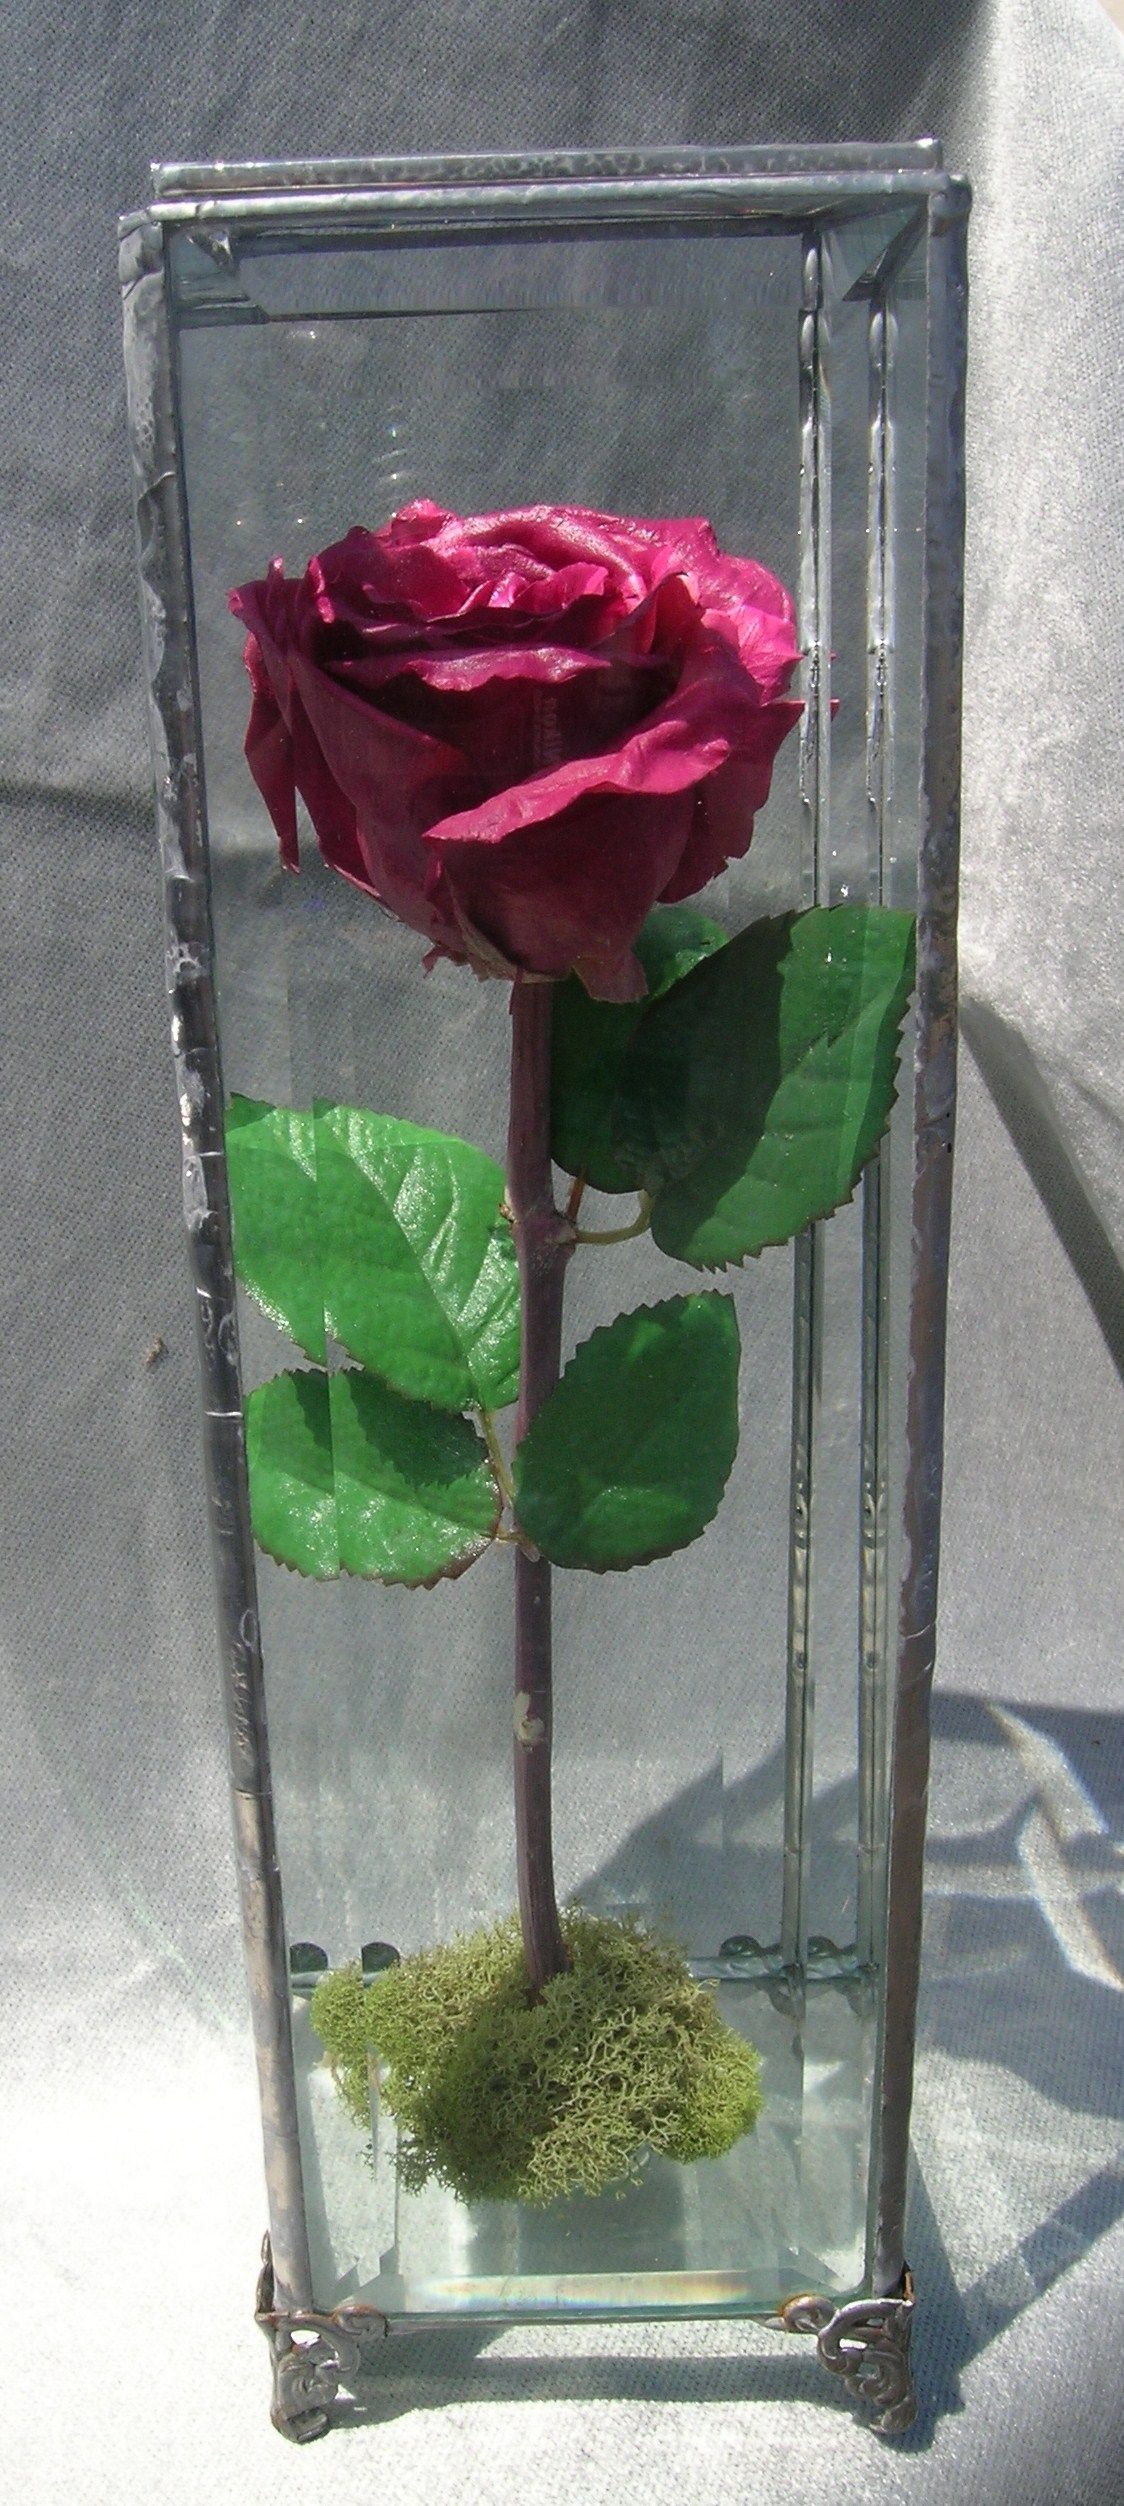 Preserved wedding flowers in a glass box. Single rose in